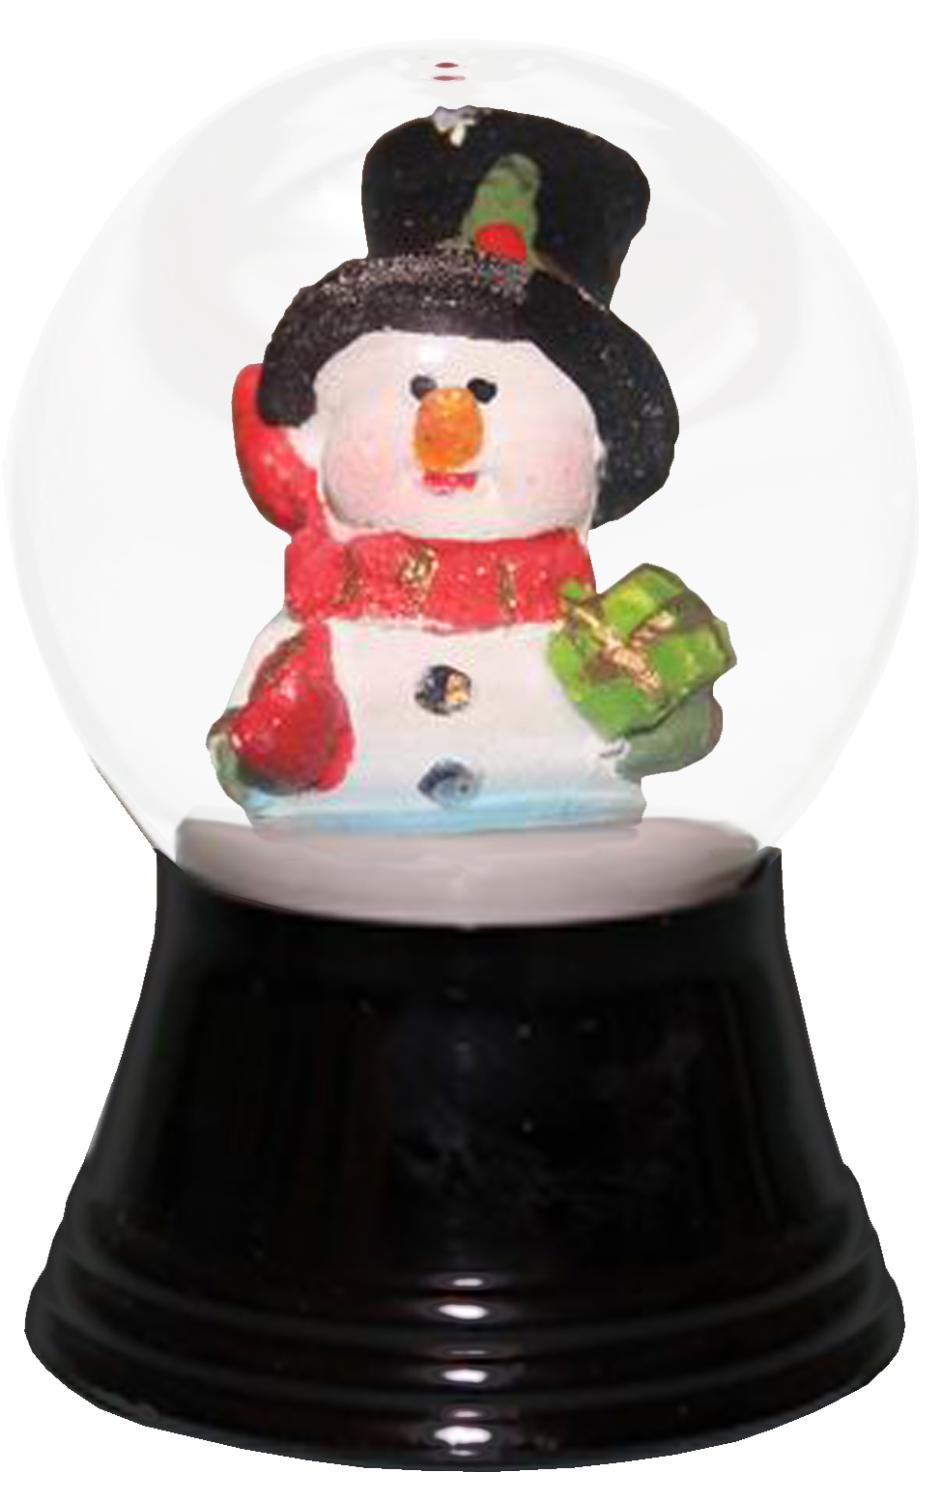 PR1280 - Perzy Snowglobe, Small Snowman with Scarf - 2.5